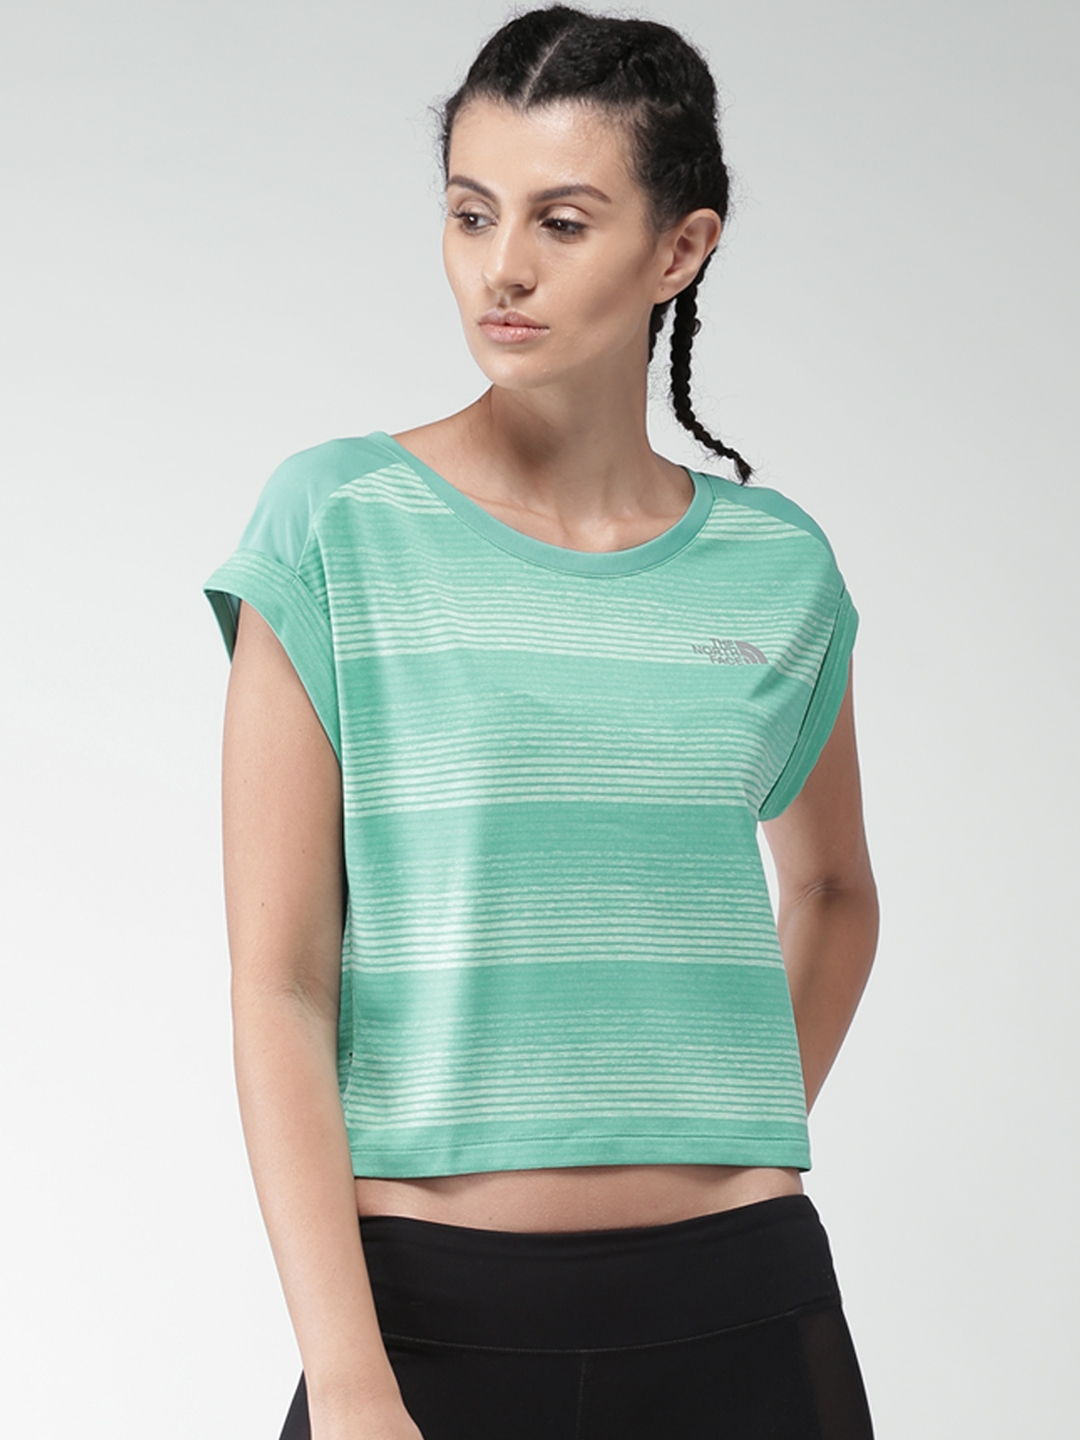 Buy The North Face Women Green Striped Round Neck Crop T Shirt ... 8efa97480